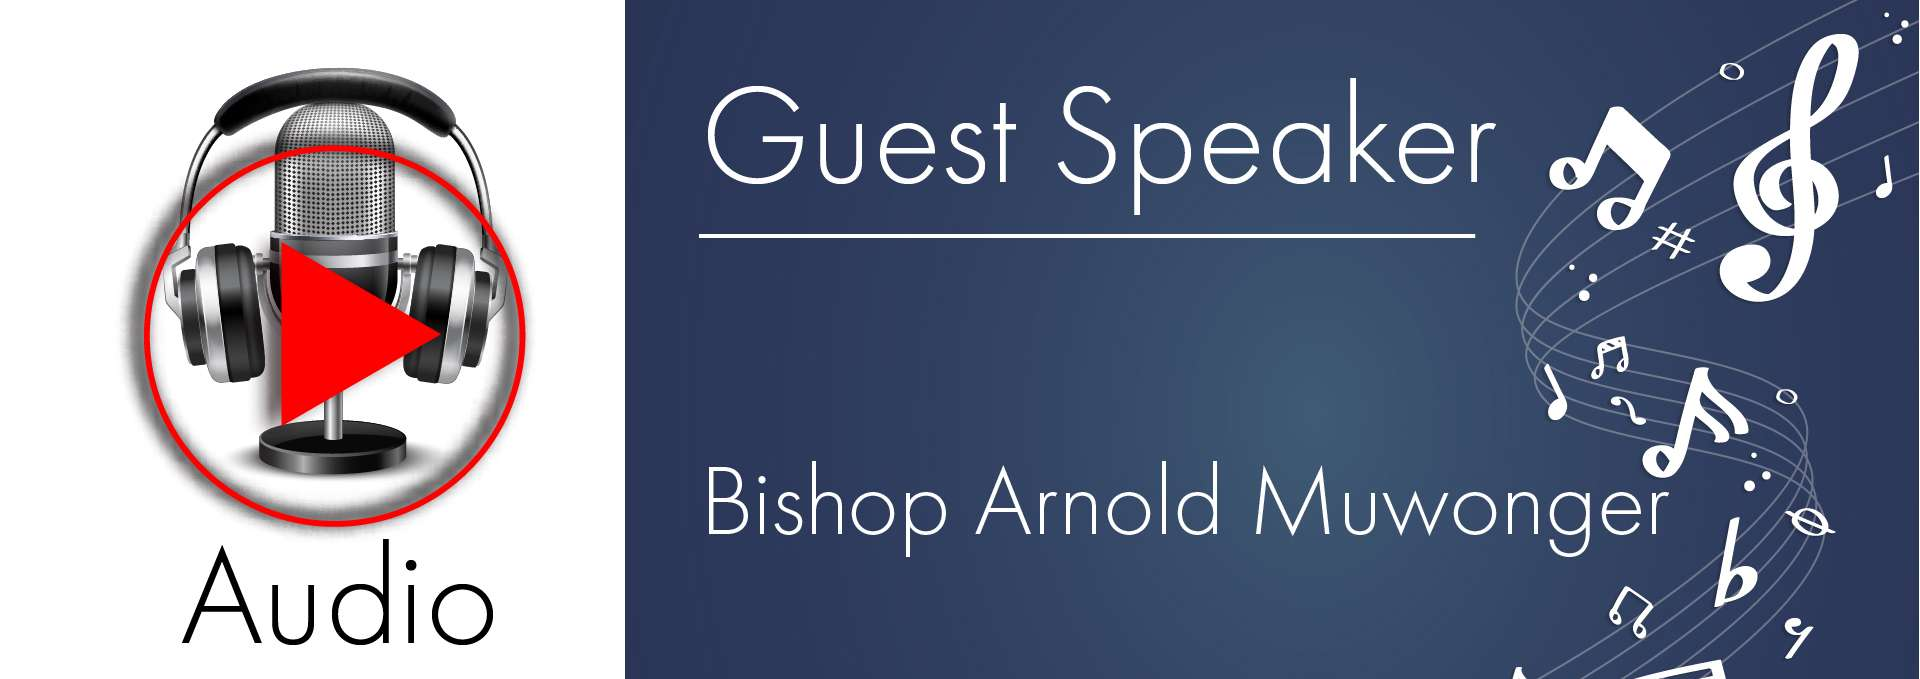 retro-audio-screen-w-play-button-2019-guest-speaker-bishop-arnold-muwonge